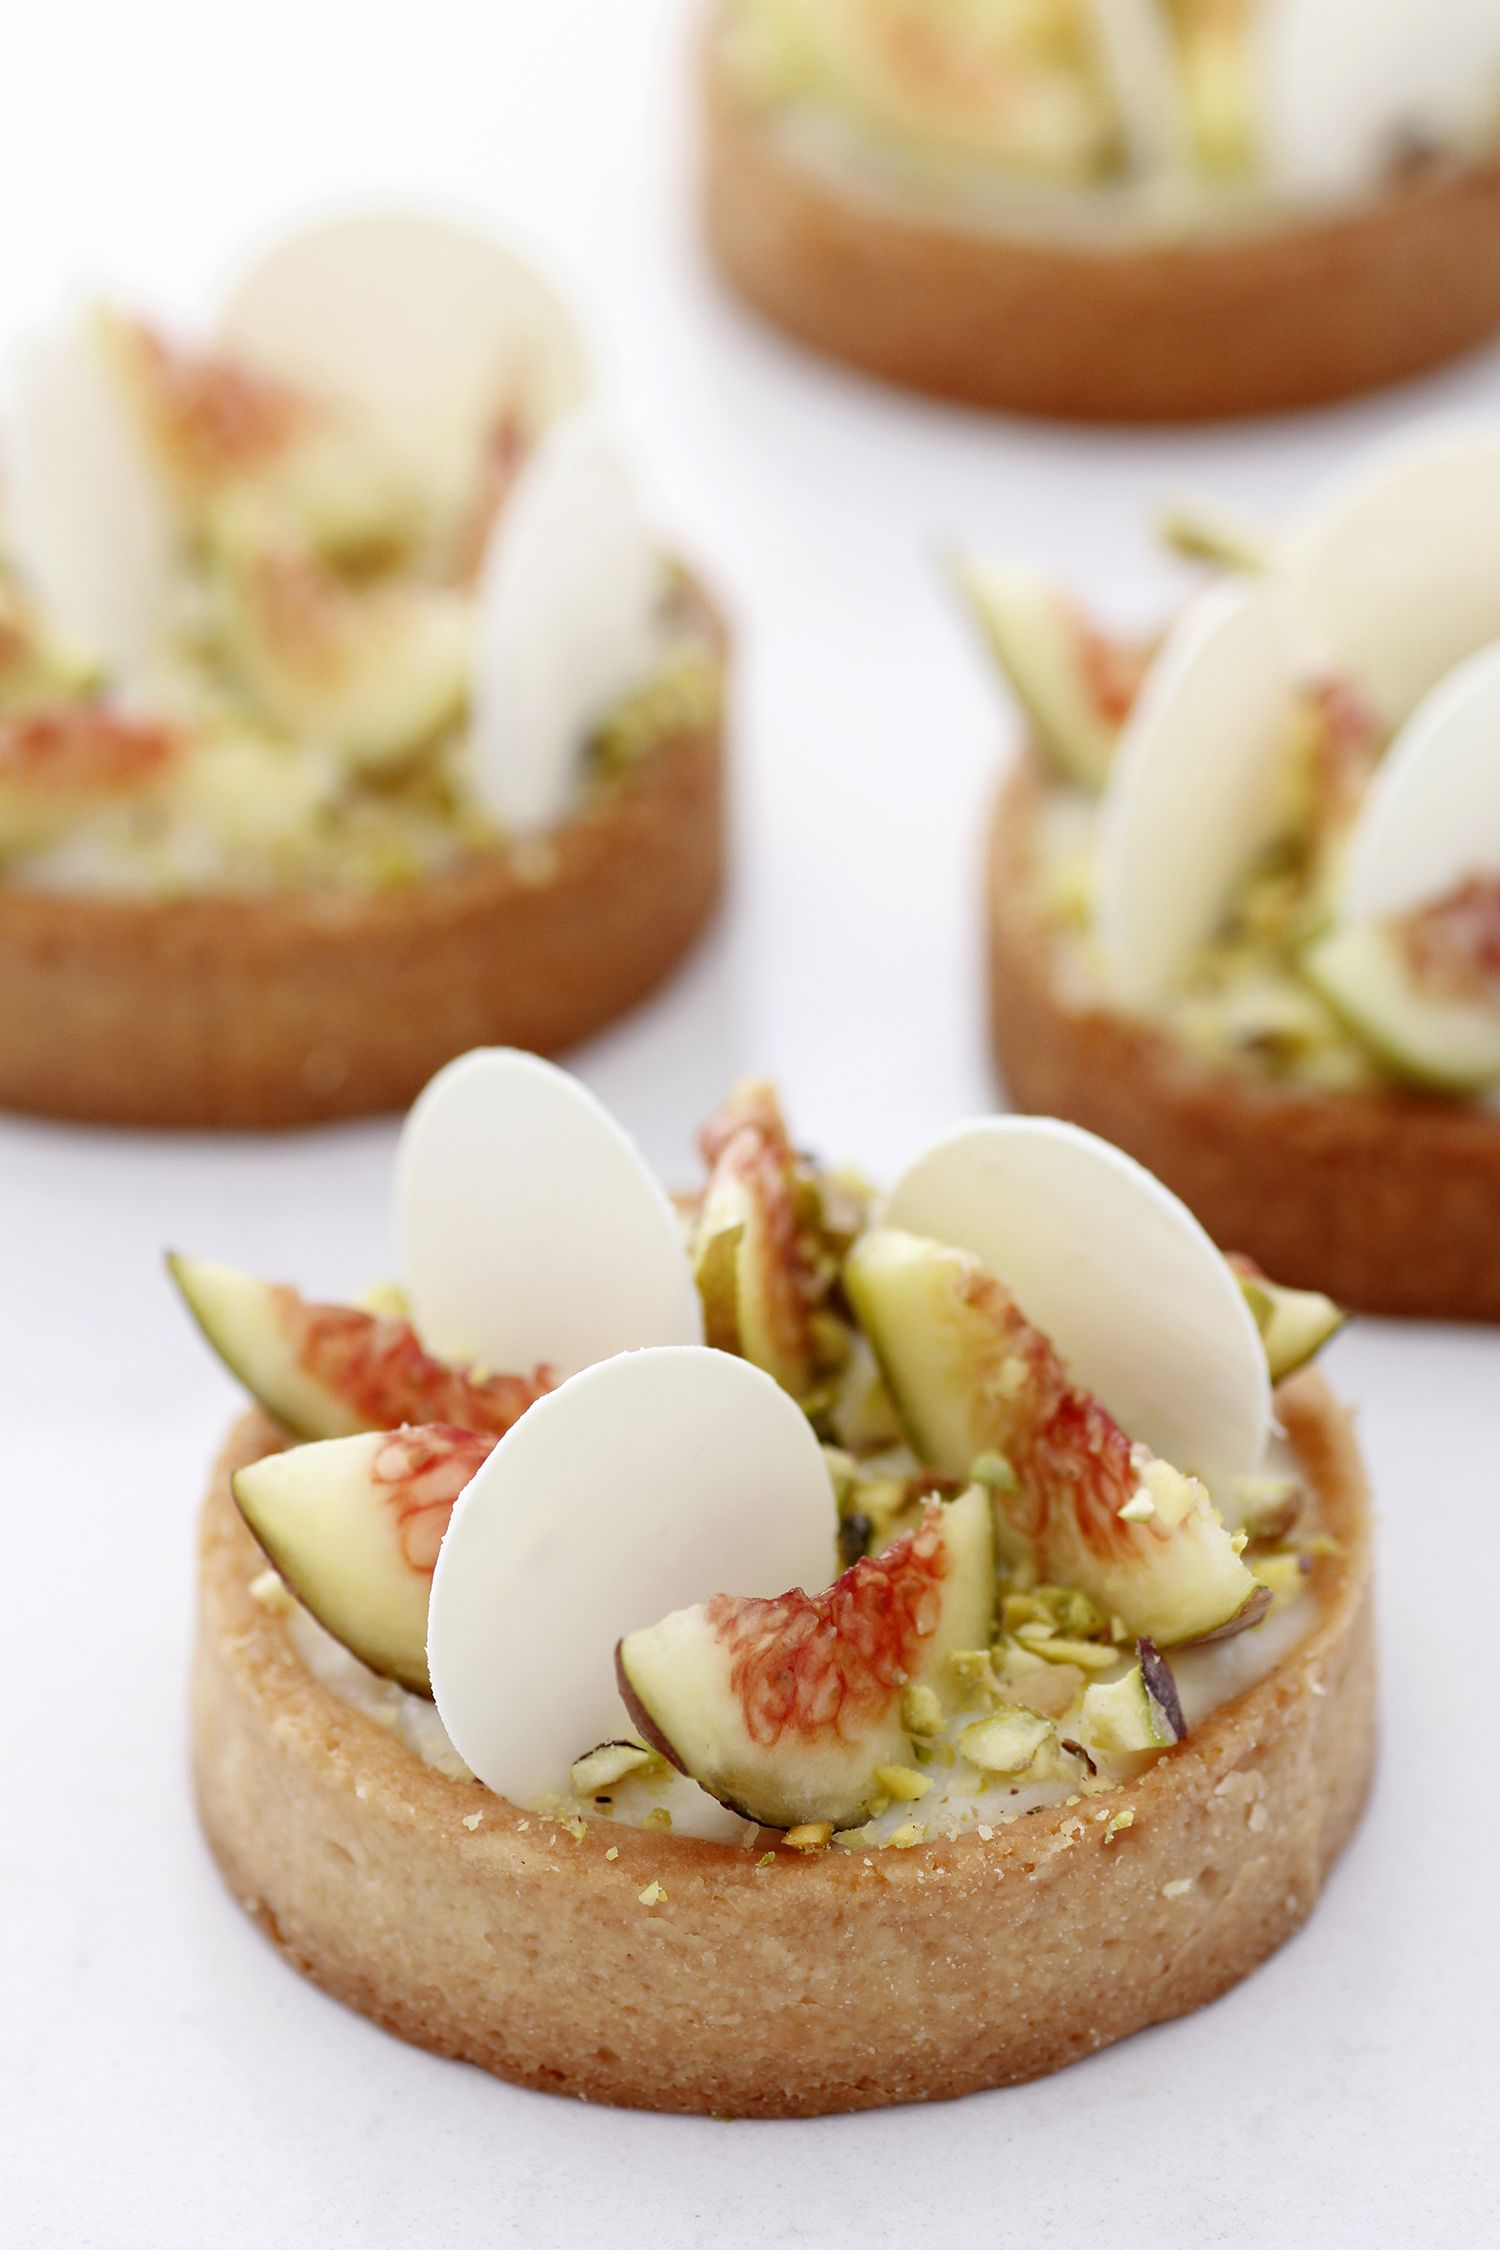 Vanilla Tart with Figs and Pistachio